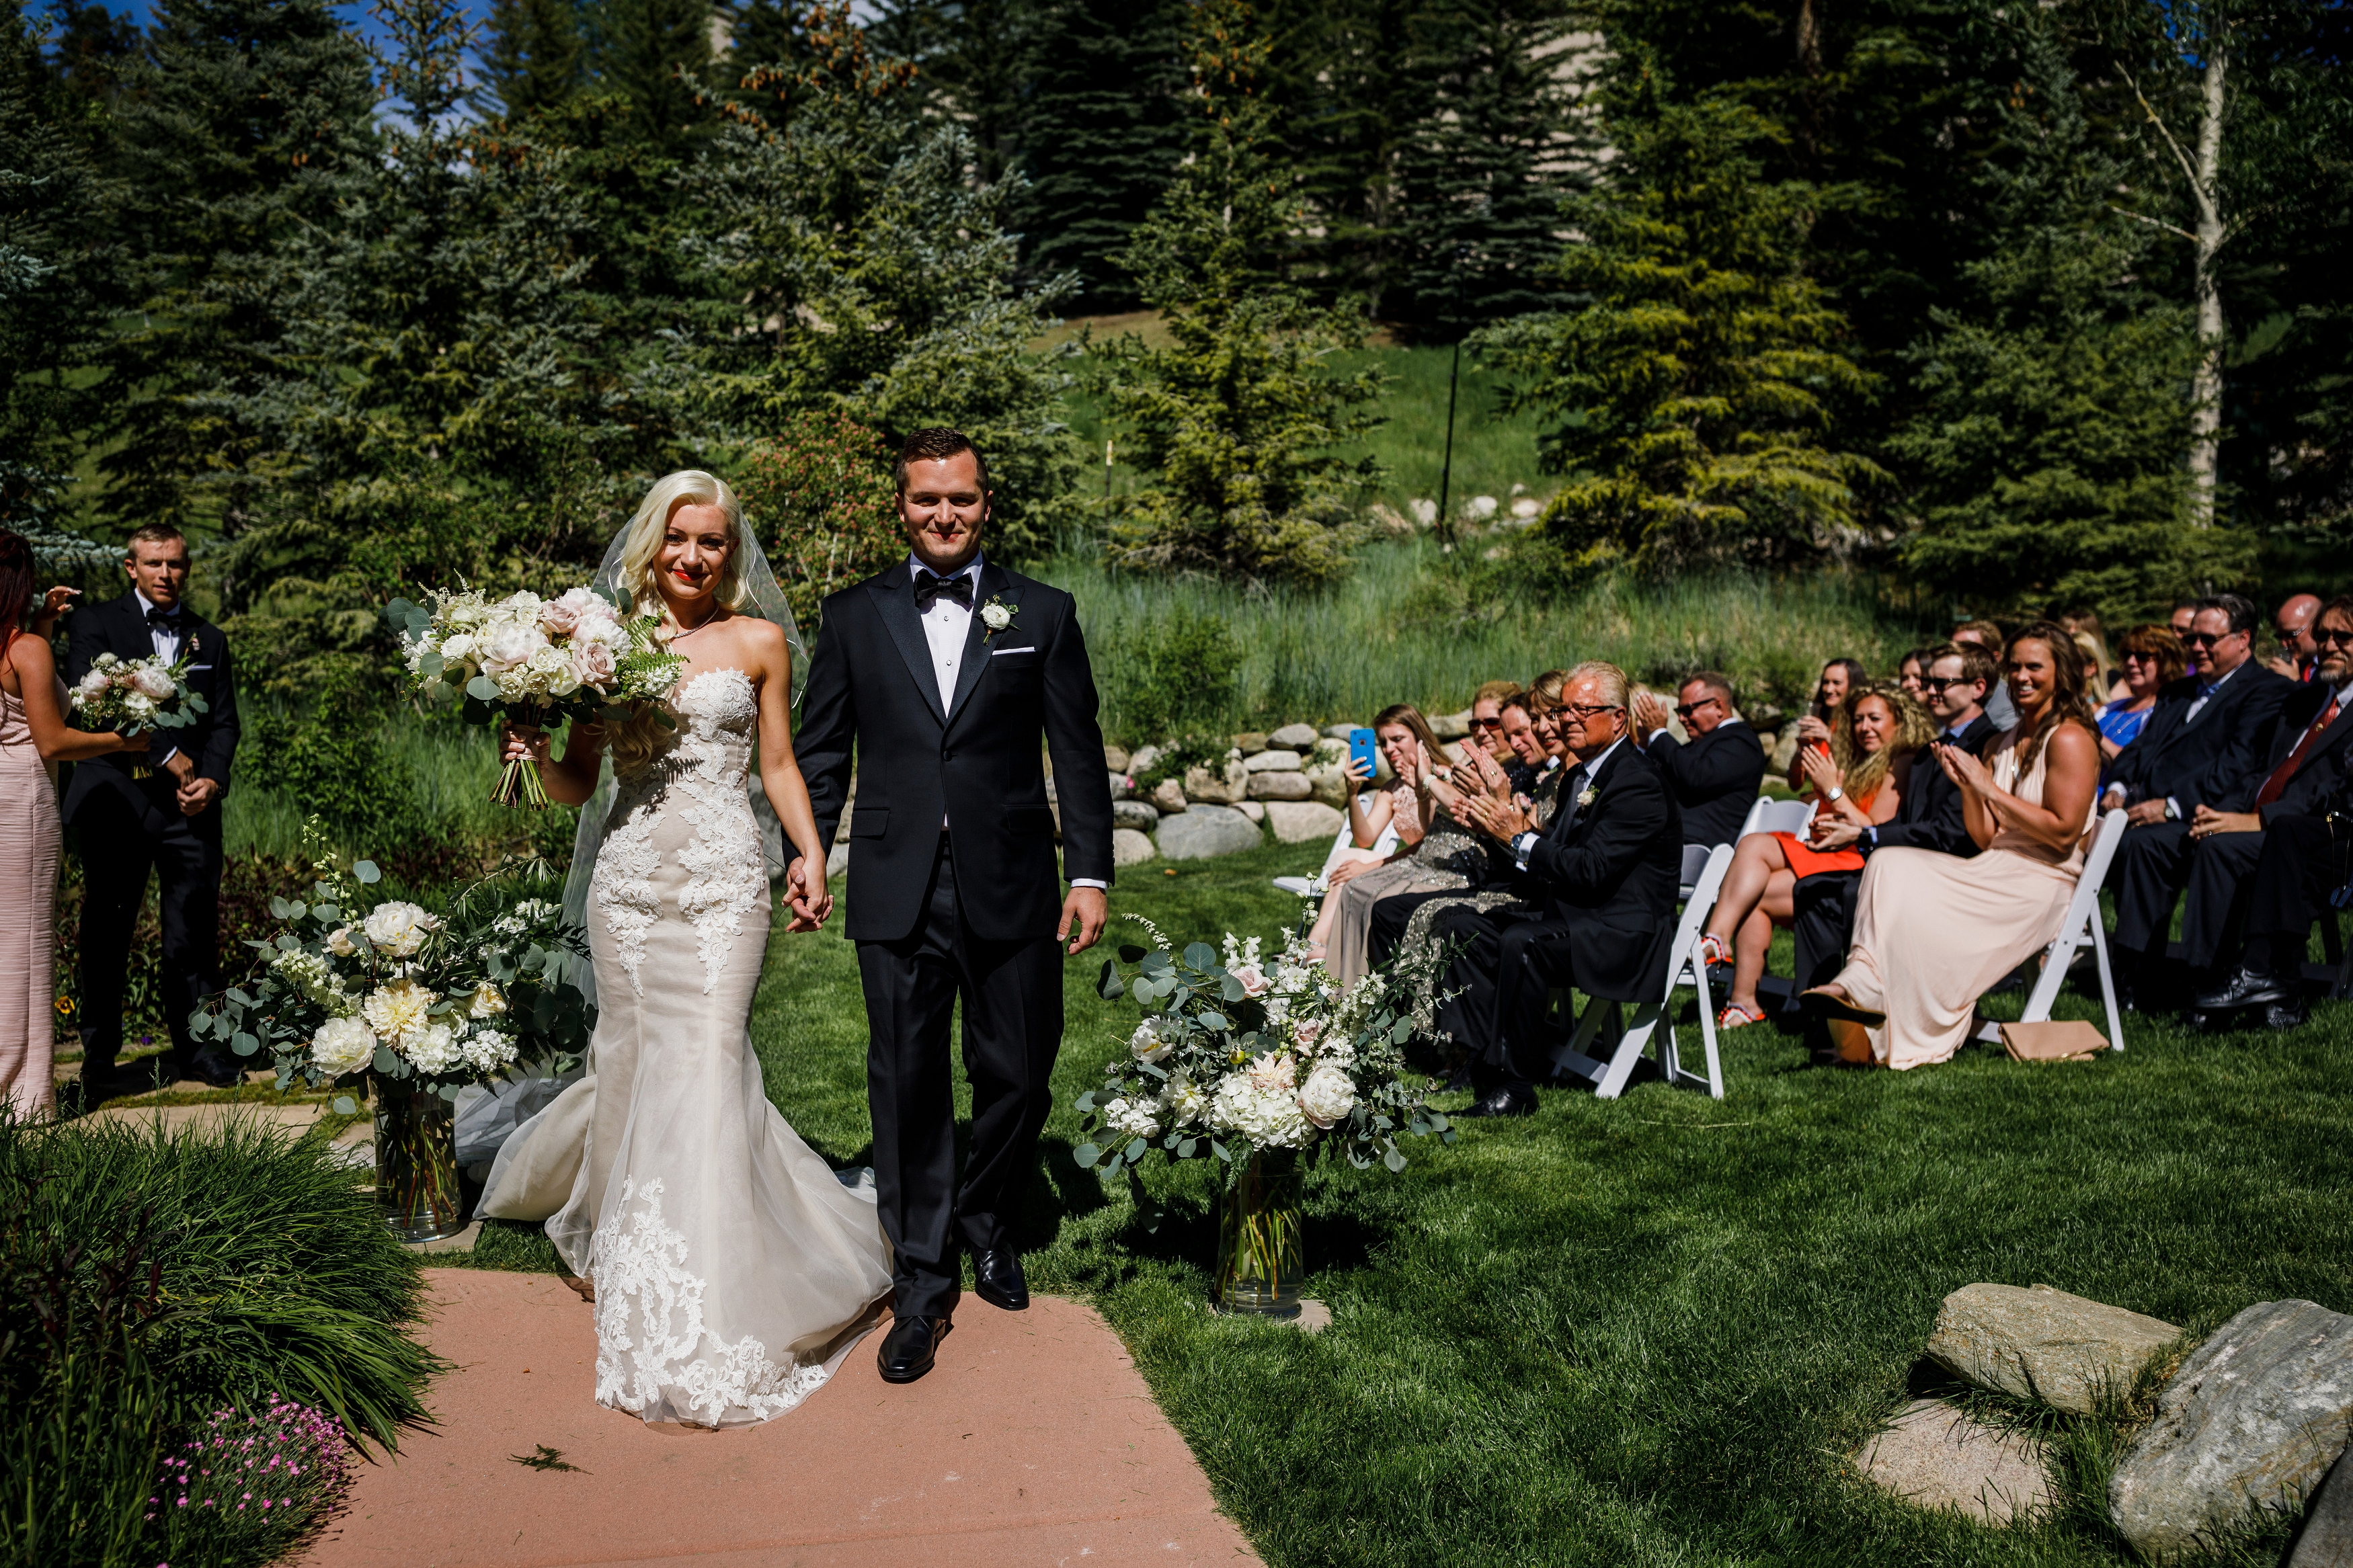 Bride & groom recessional at Park Hyatt Wedding Garden